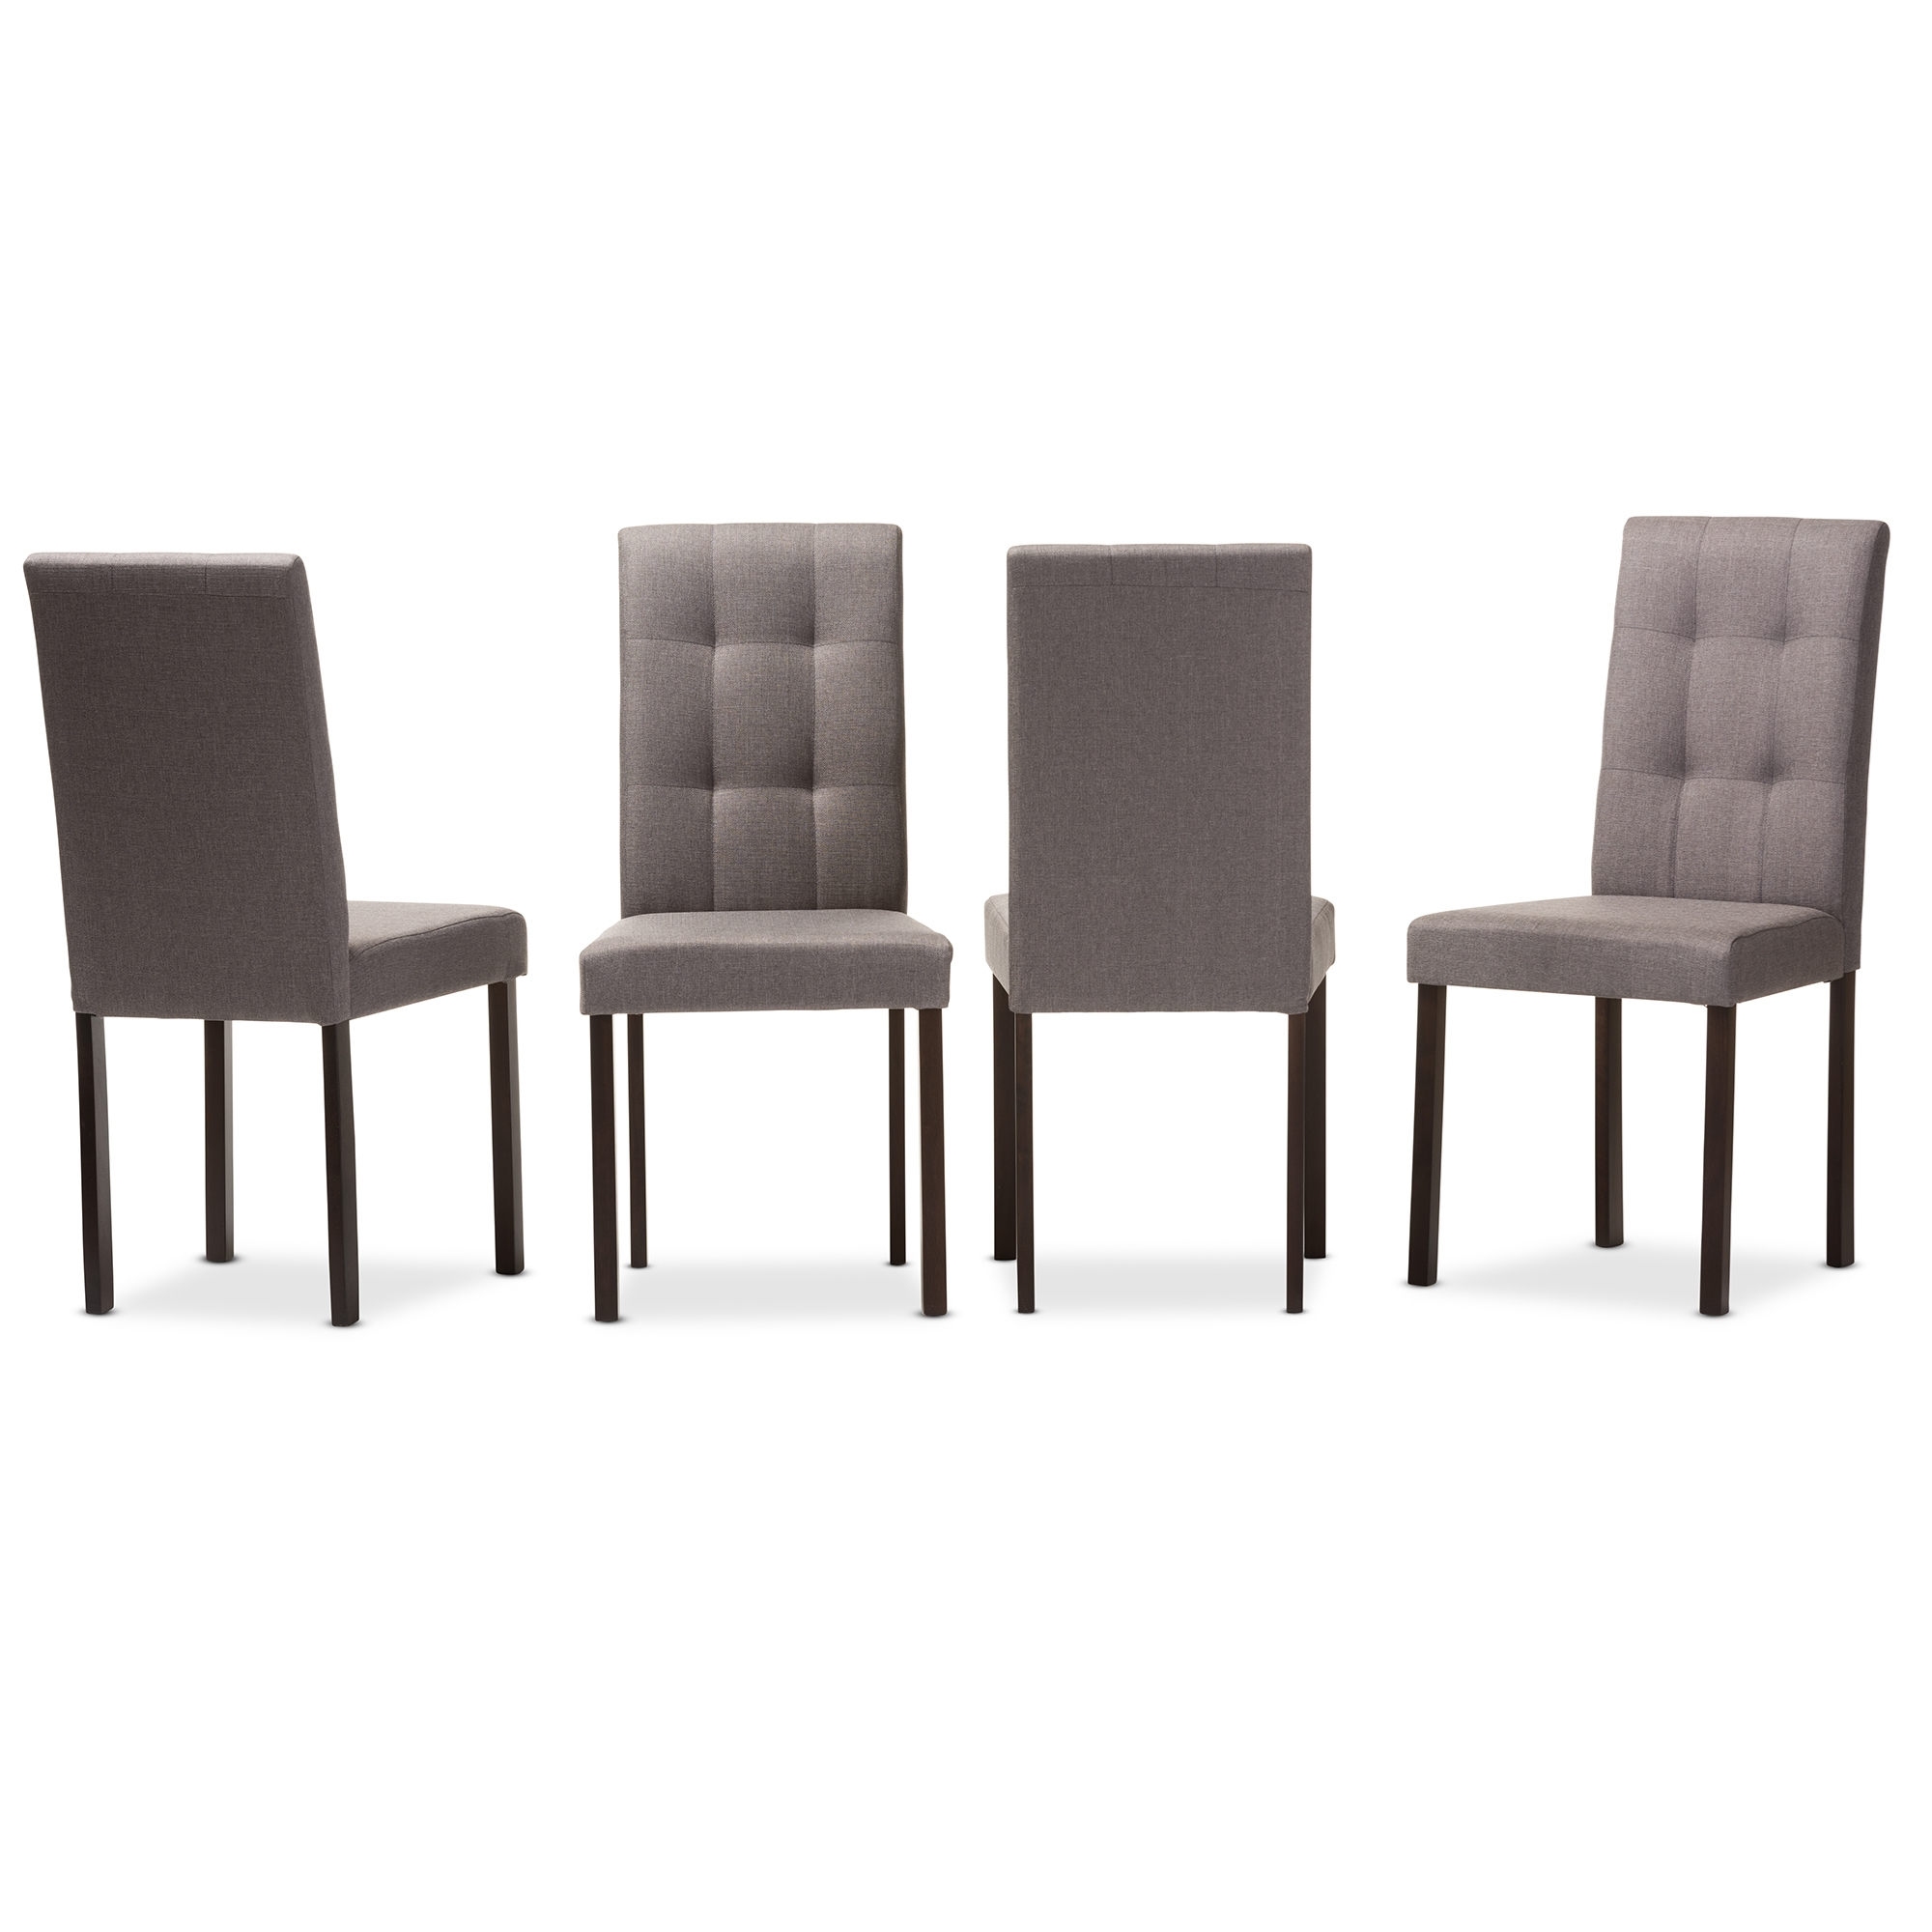 Wonderful Baxton Studio Andrew Modern And Contemporary Grey Fabric Upholstered  Grid Tufting Dining Chair